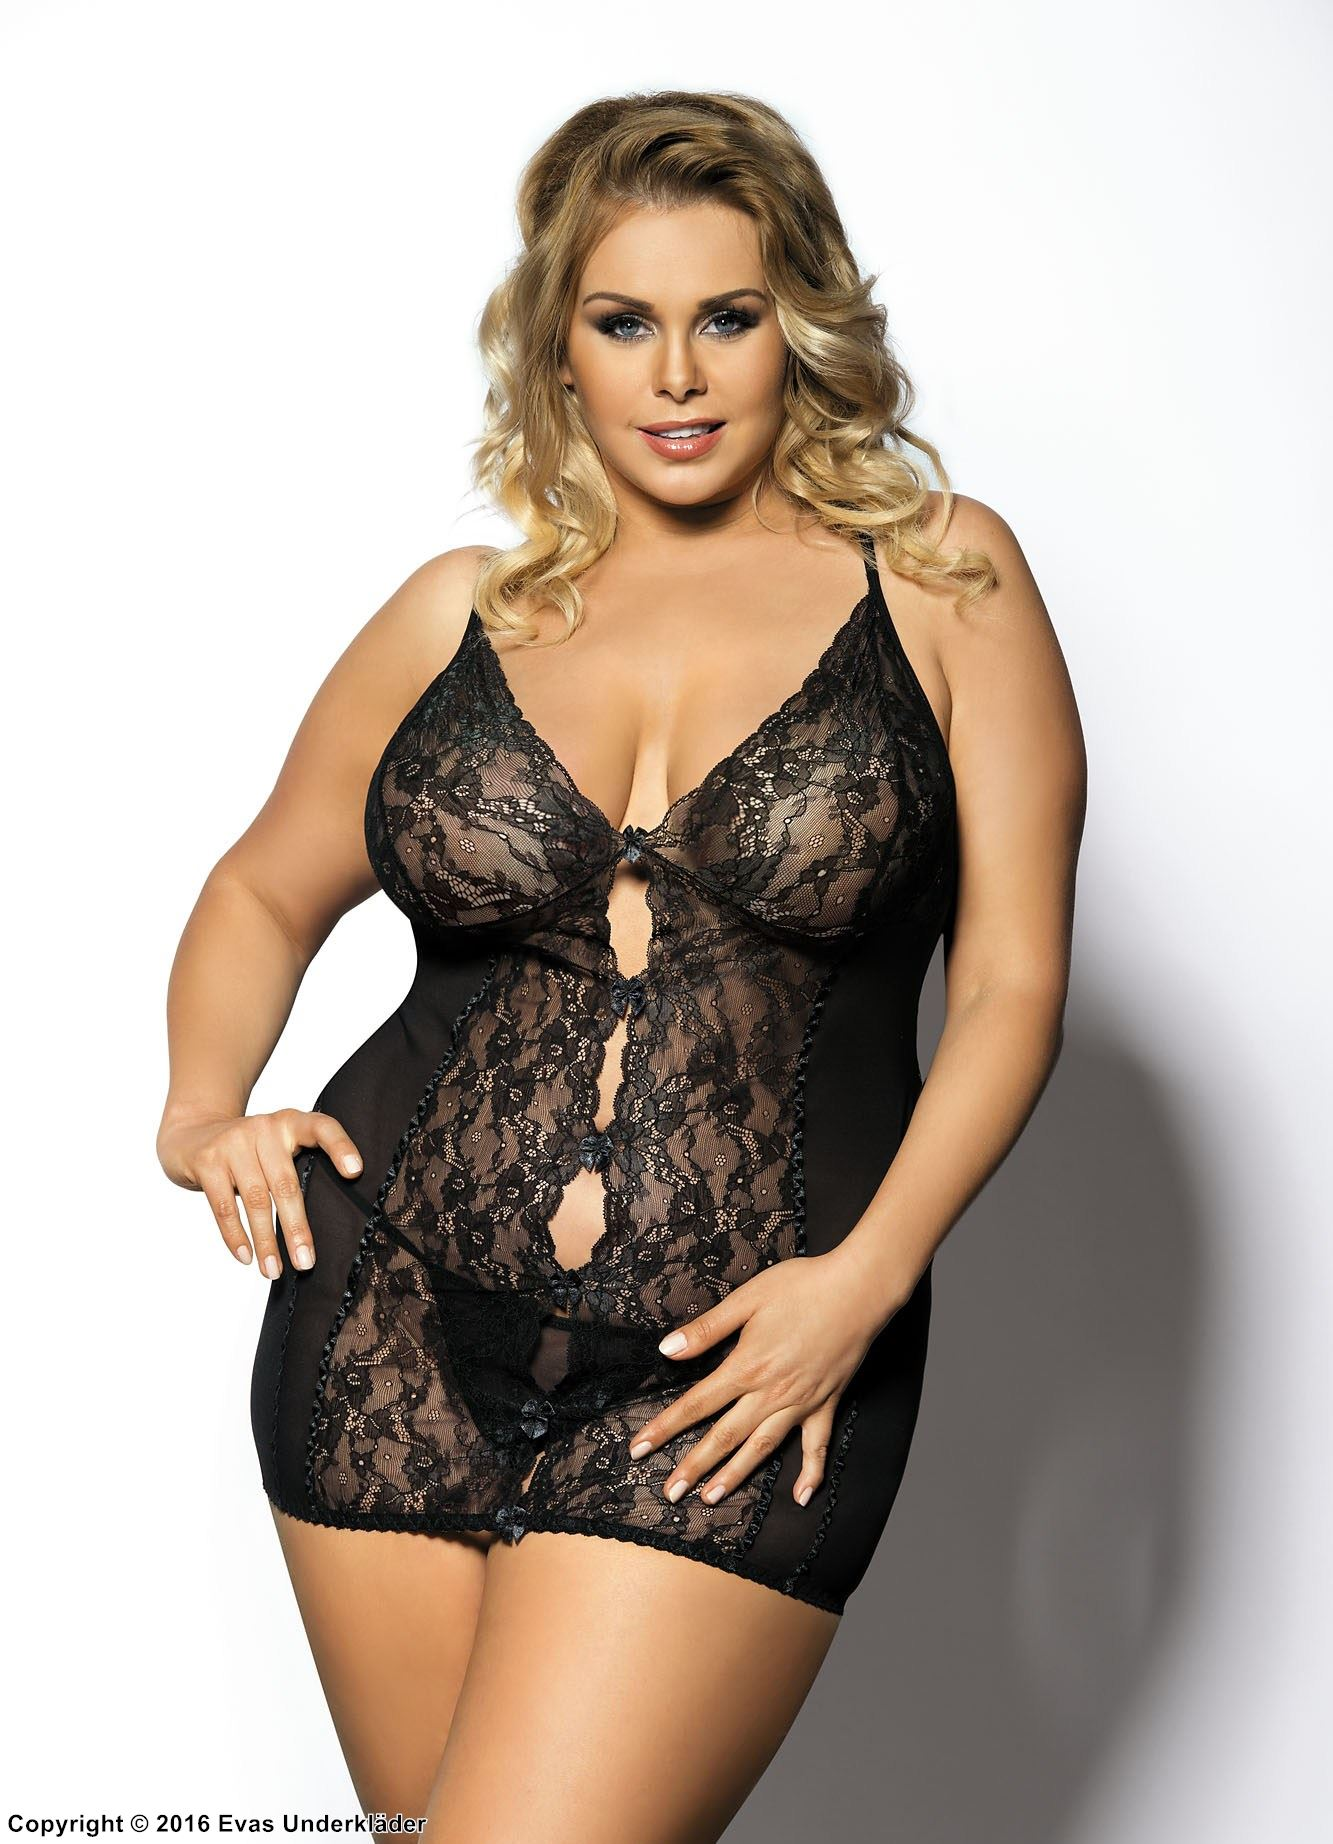 Chemise, transparent lace, deep neckline, plus size